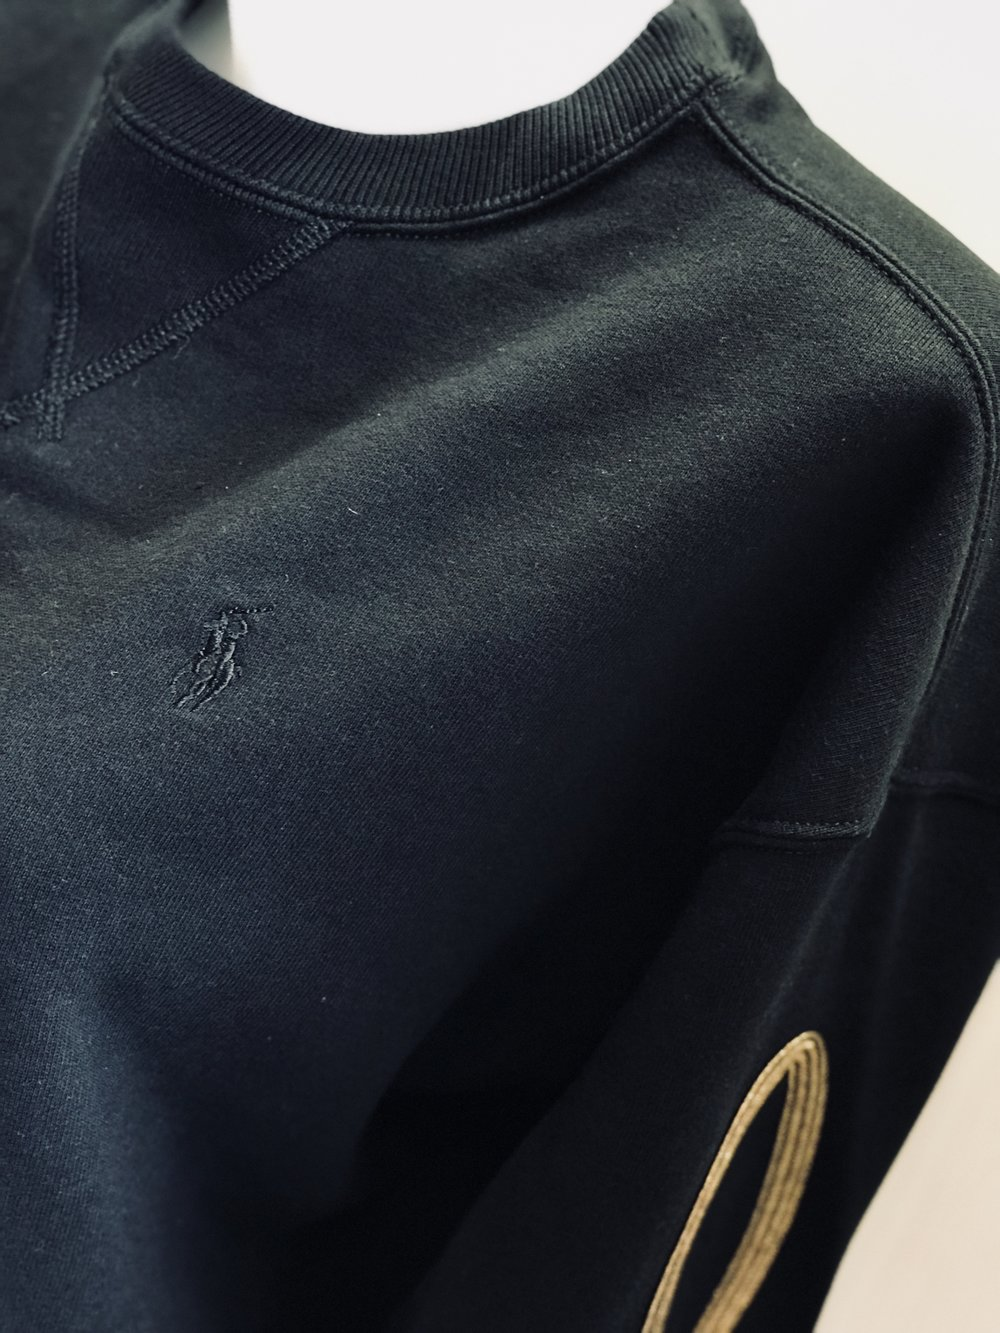 Co-ordinating  Ralph Lauren    sweatshirt.